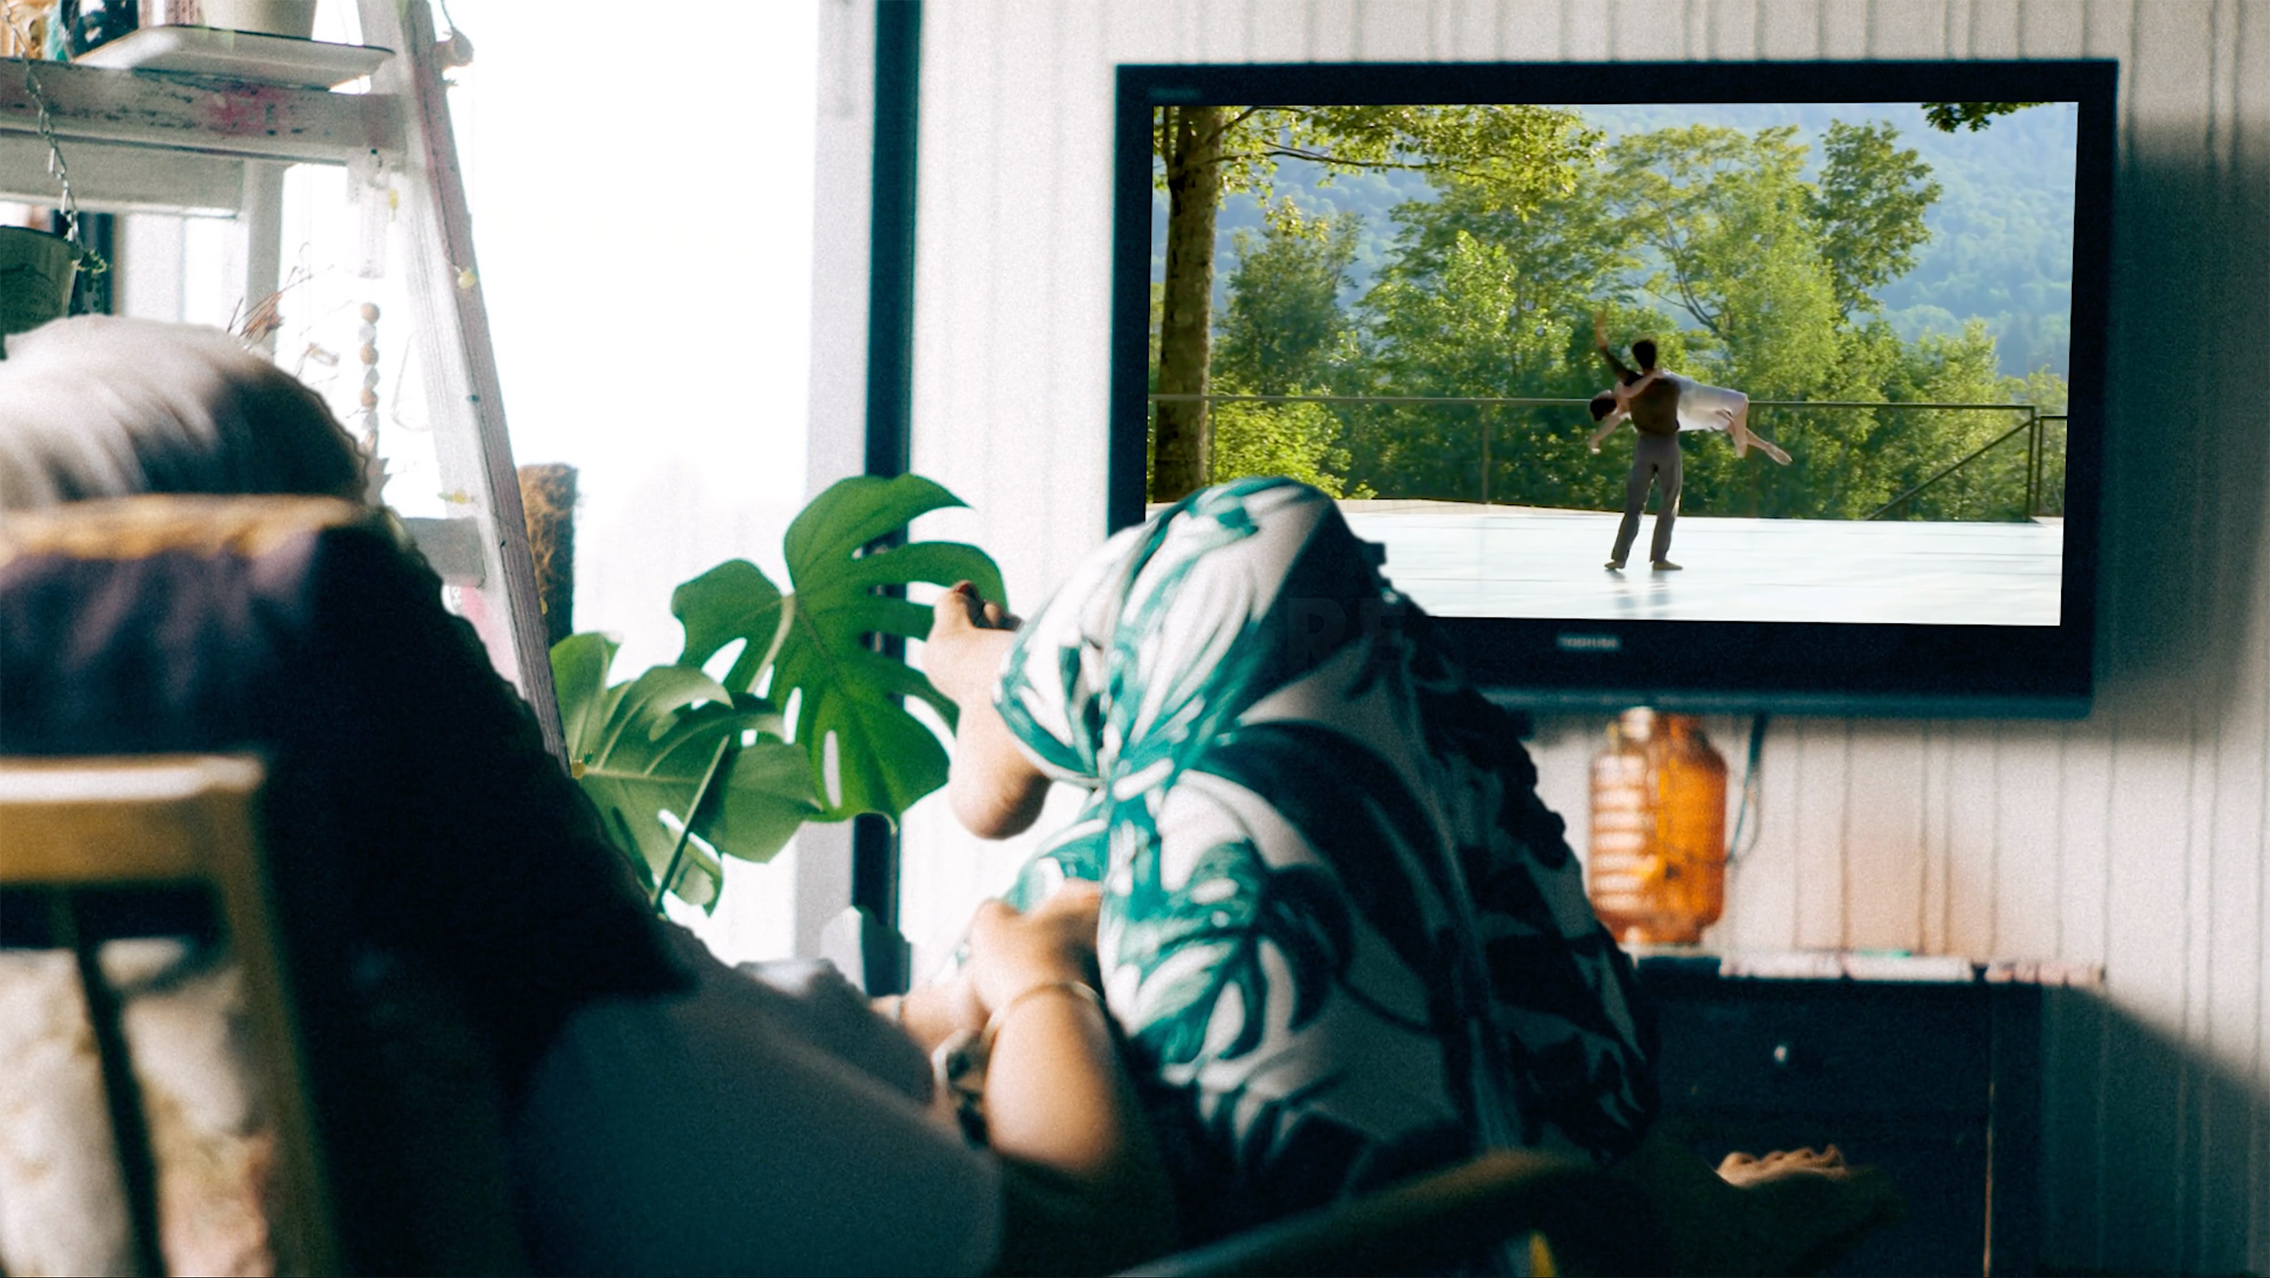 Person sitting on couch watch a Jacob's Pillow dance performance on their TV.